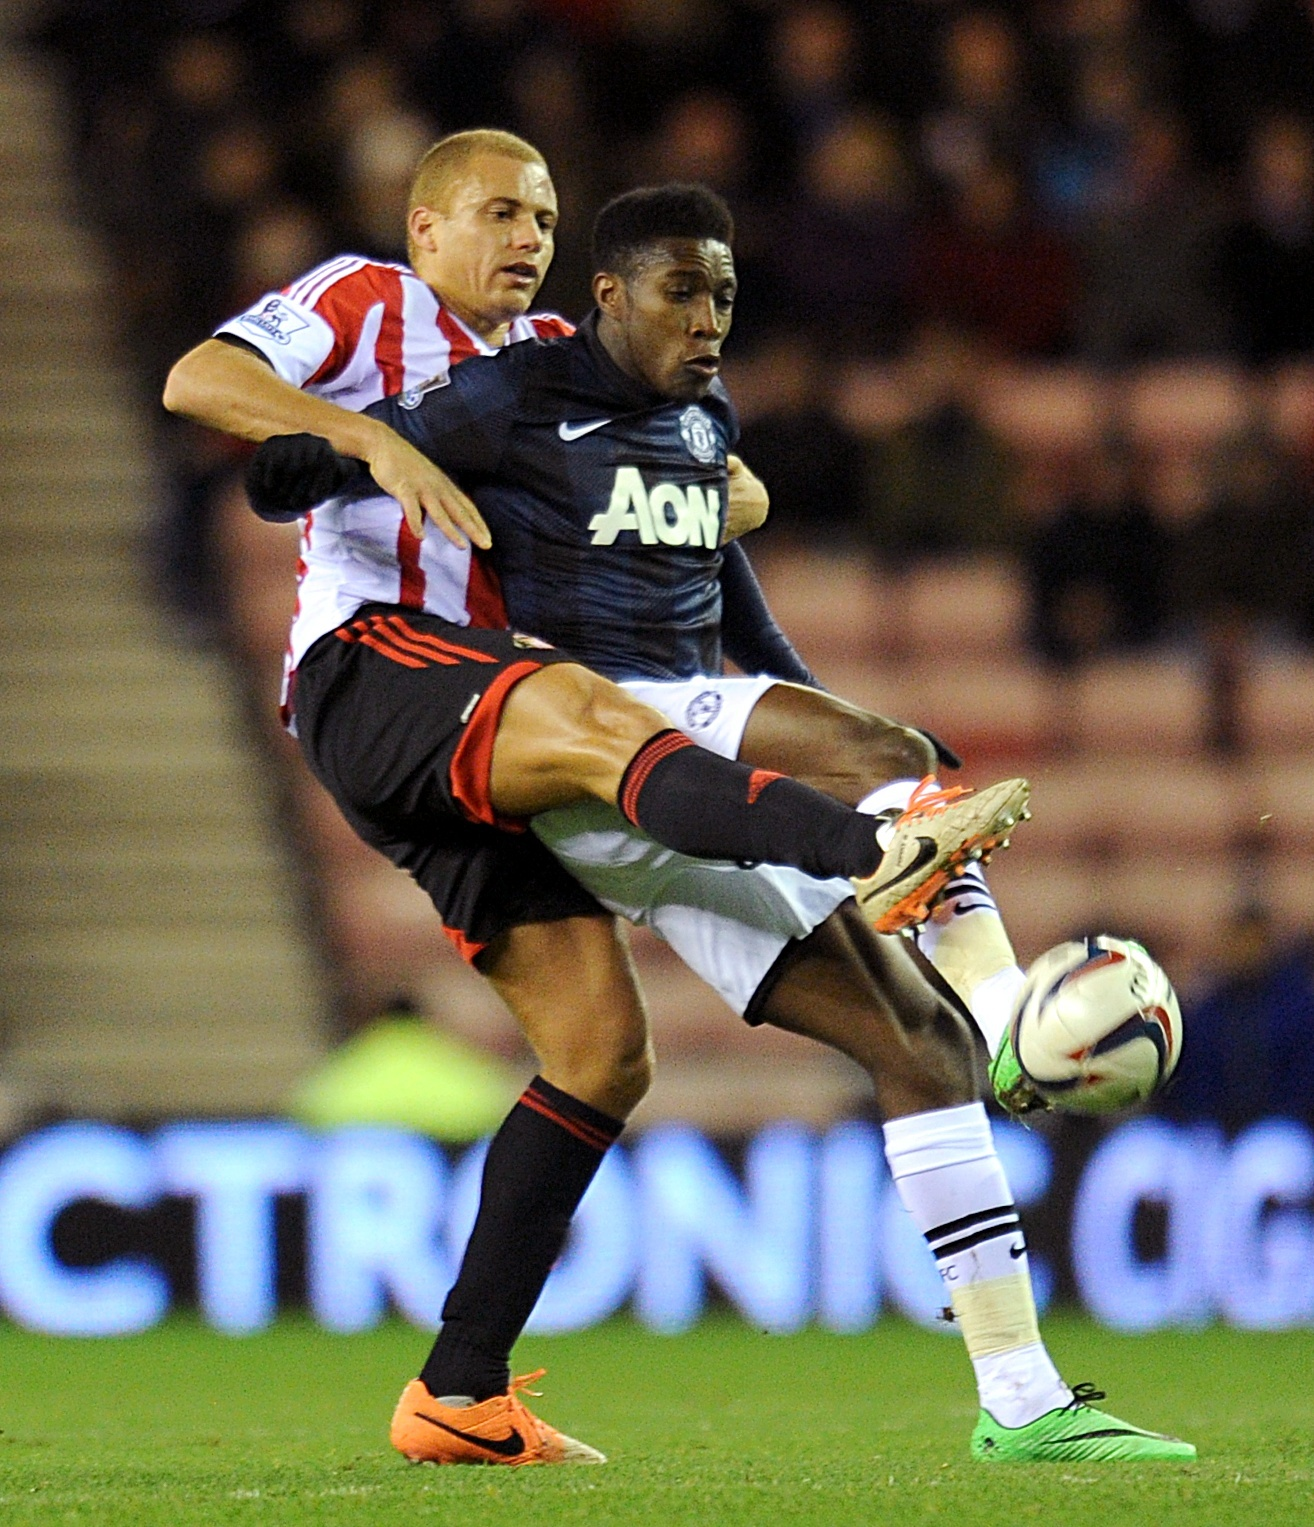 LIFE BEGINS AT 40: Wes Brown, left, tussles with Danny Welbeck during the first leg of the Capital One Cup semi-final two weeks ago. Poyet says the defender could play into his 40s